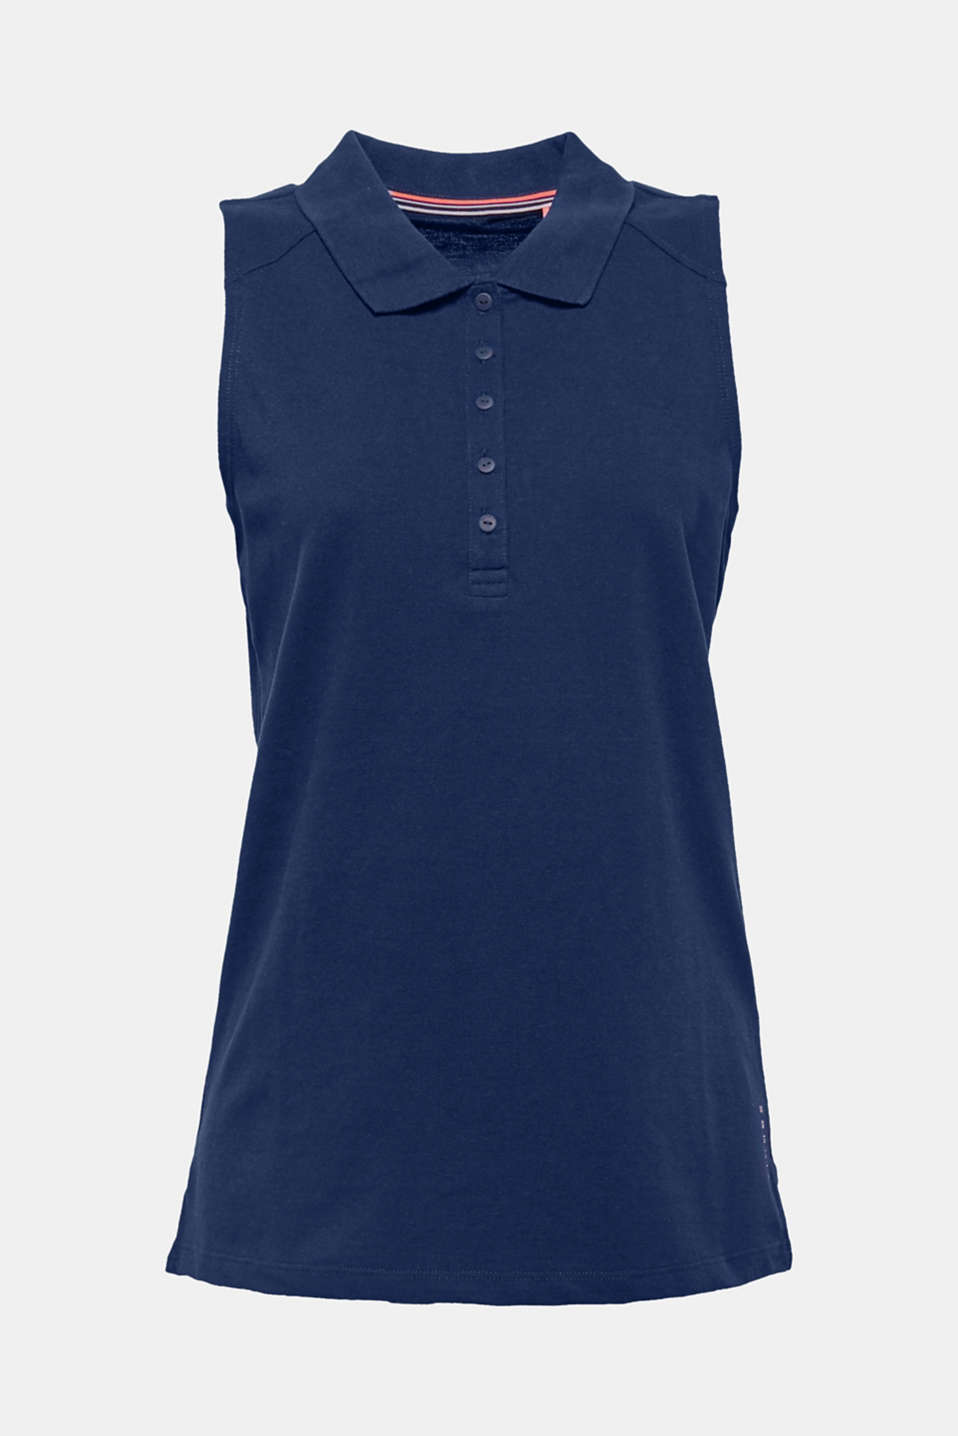 A great mix and match essential, this sleeveless piqué top comes with a polo collar, a long button placket and hem slits and is perfect for sport and leisure!